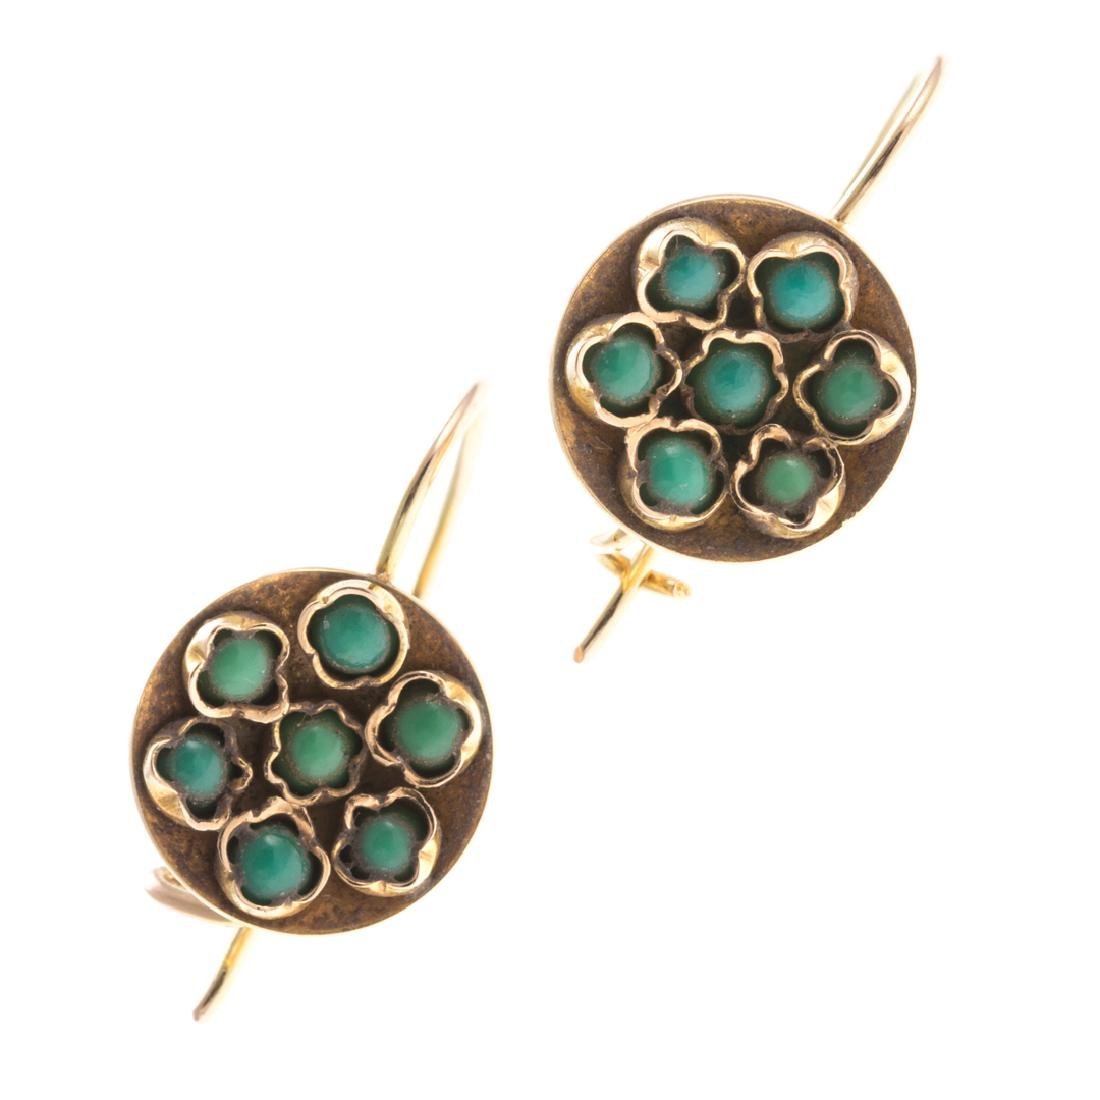 A Pair of Turquoise Earrings & Pearl Pendant - 3